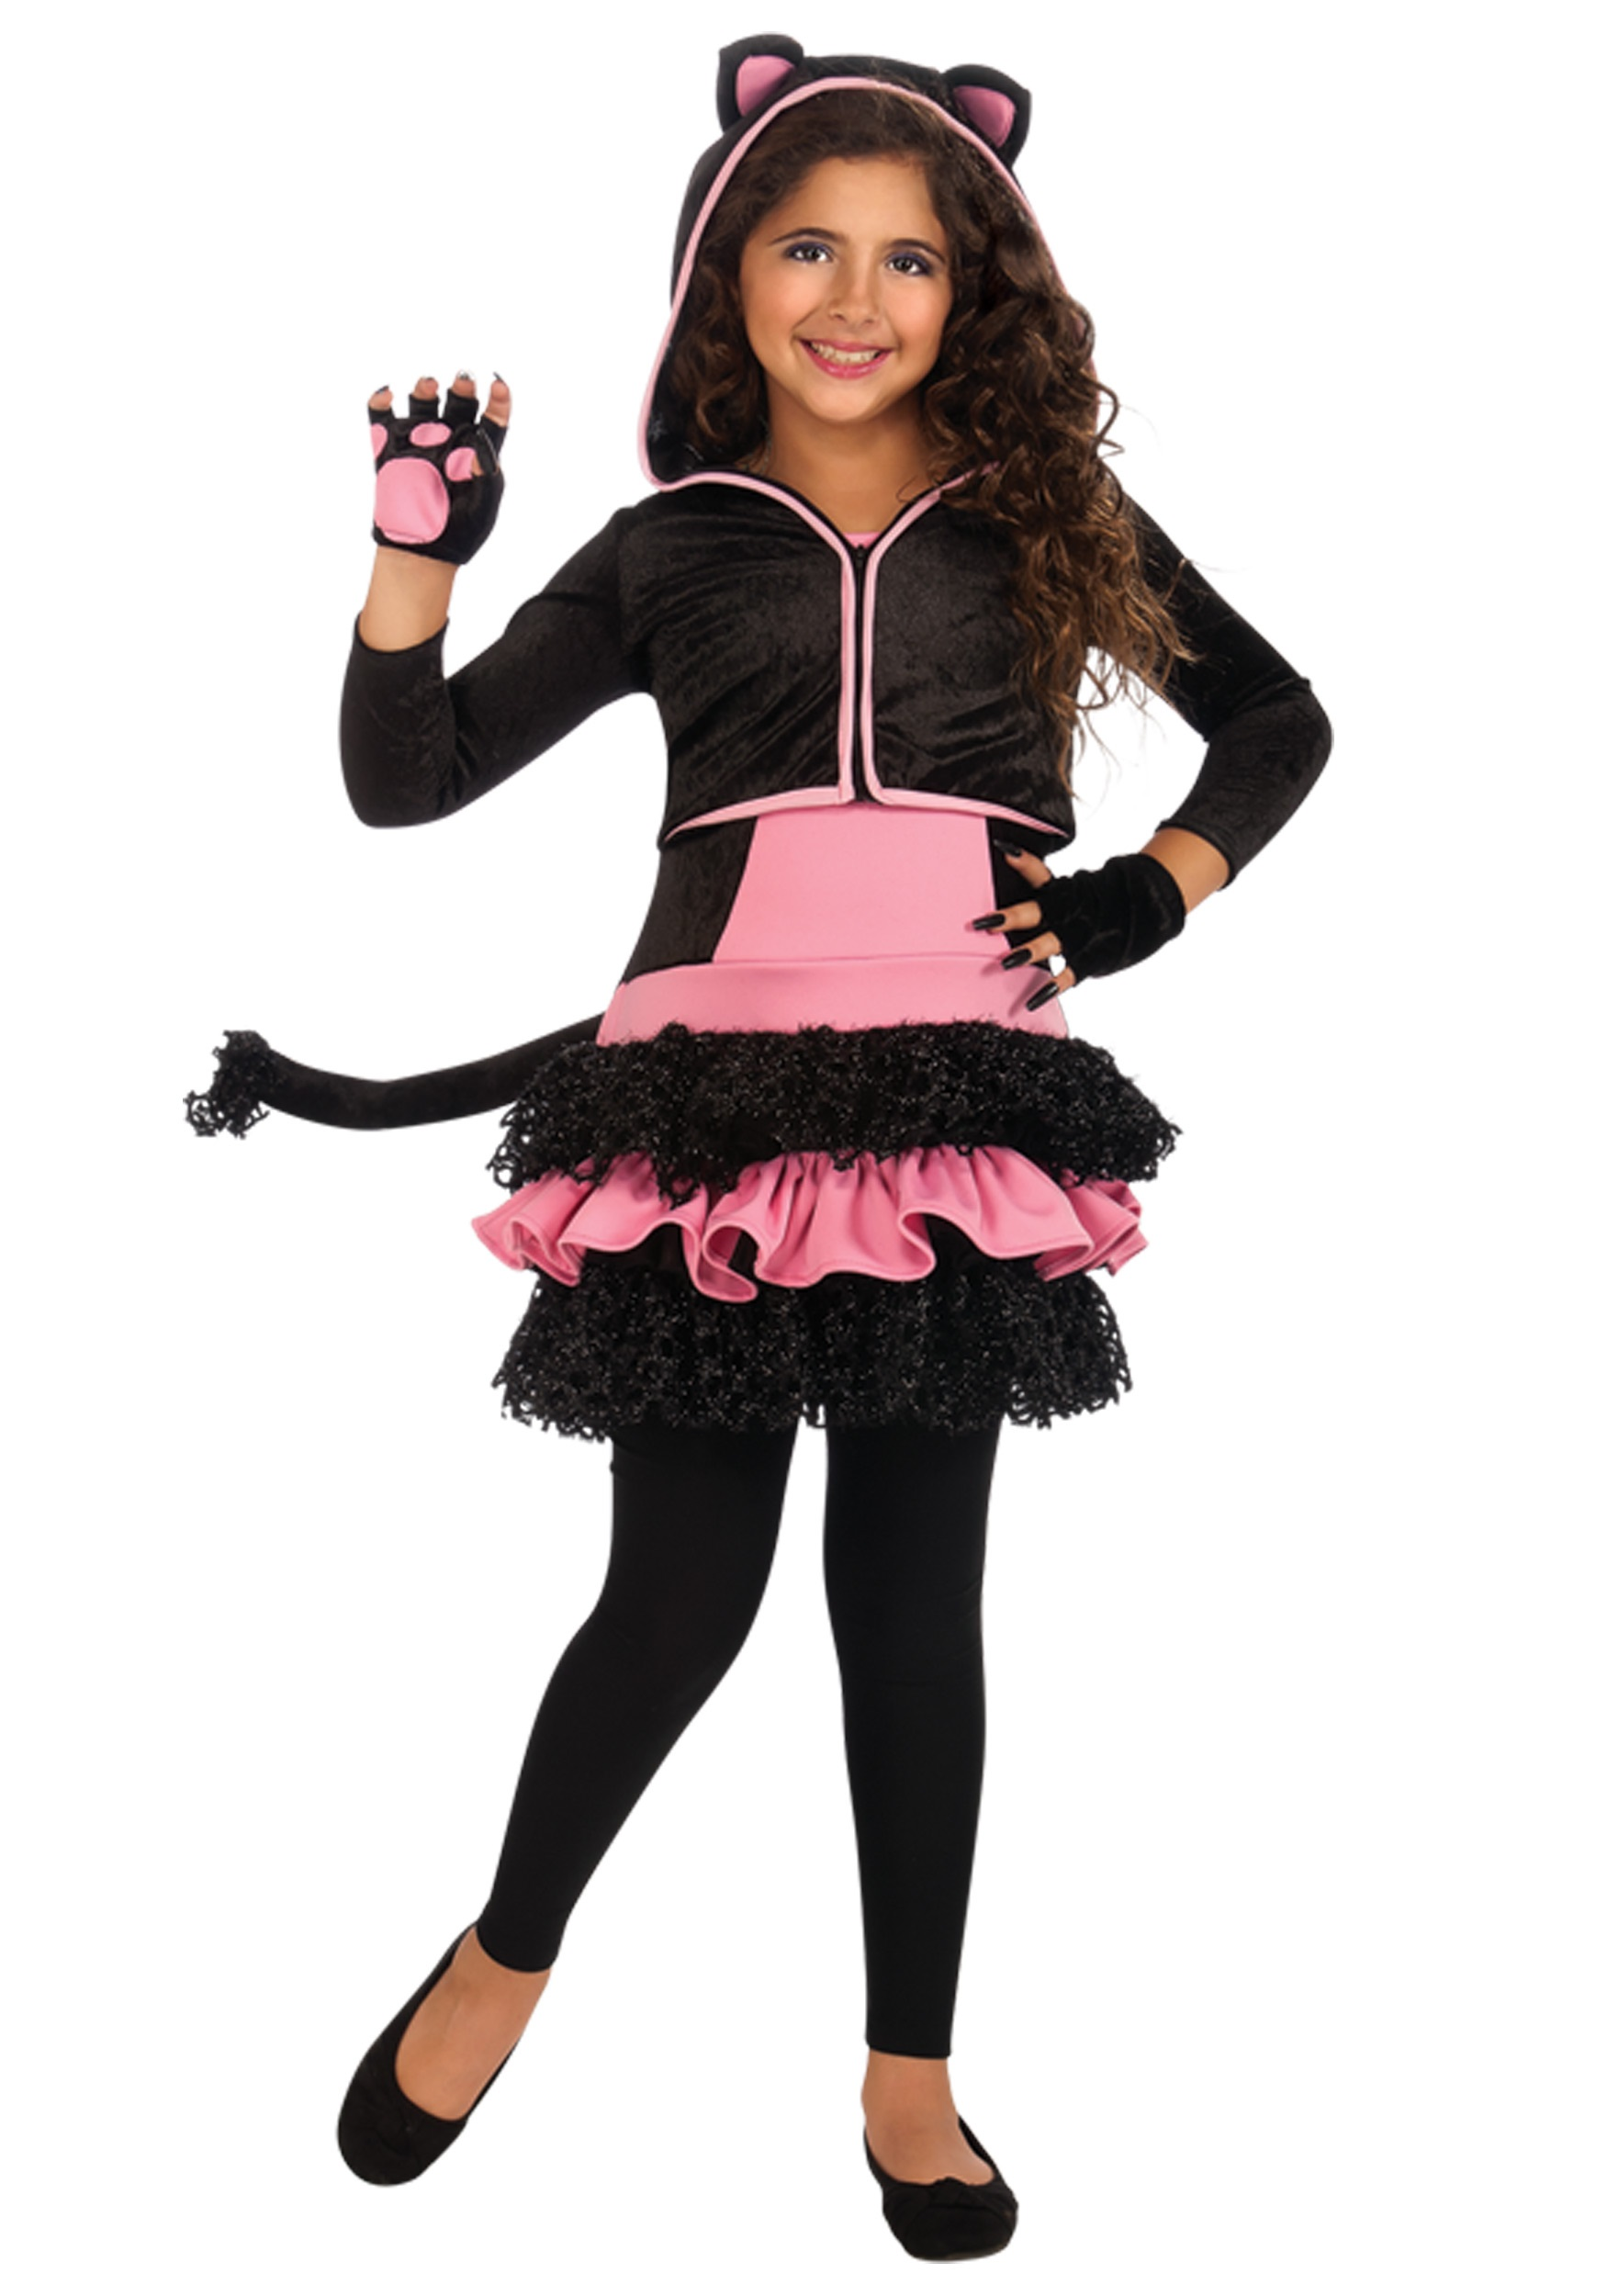 Fullsize Of Black Cat Costume